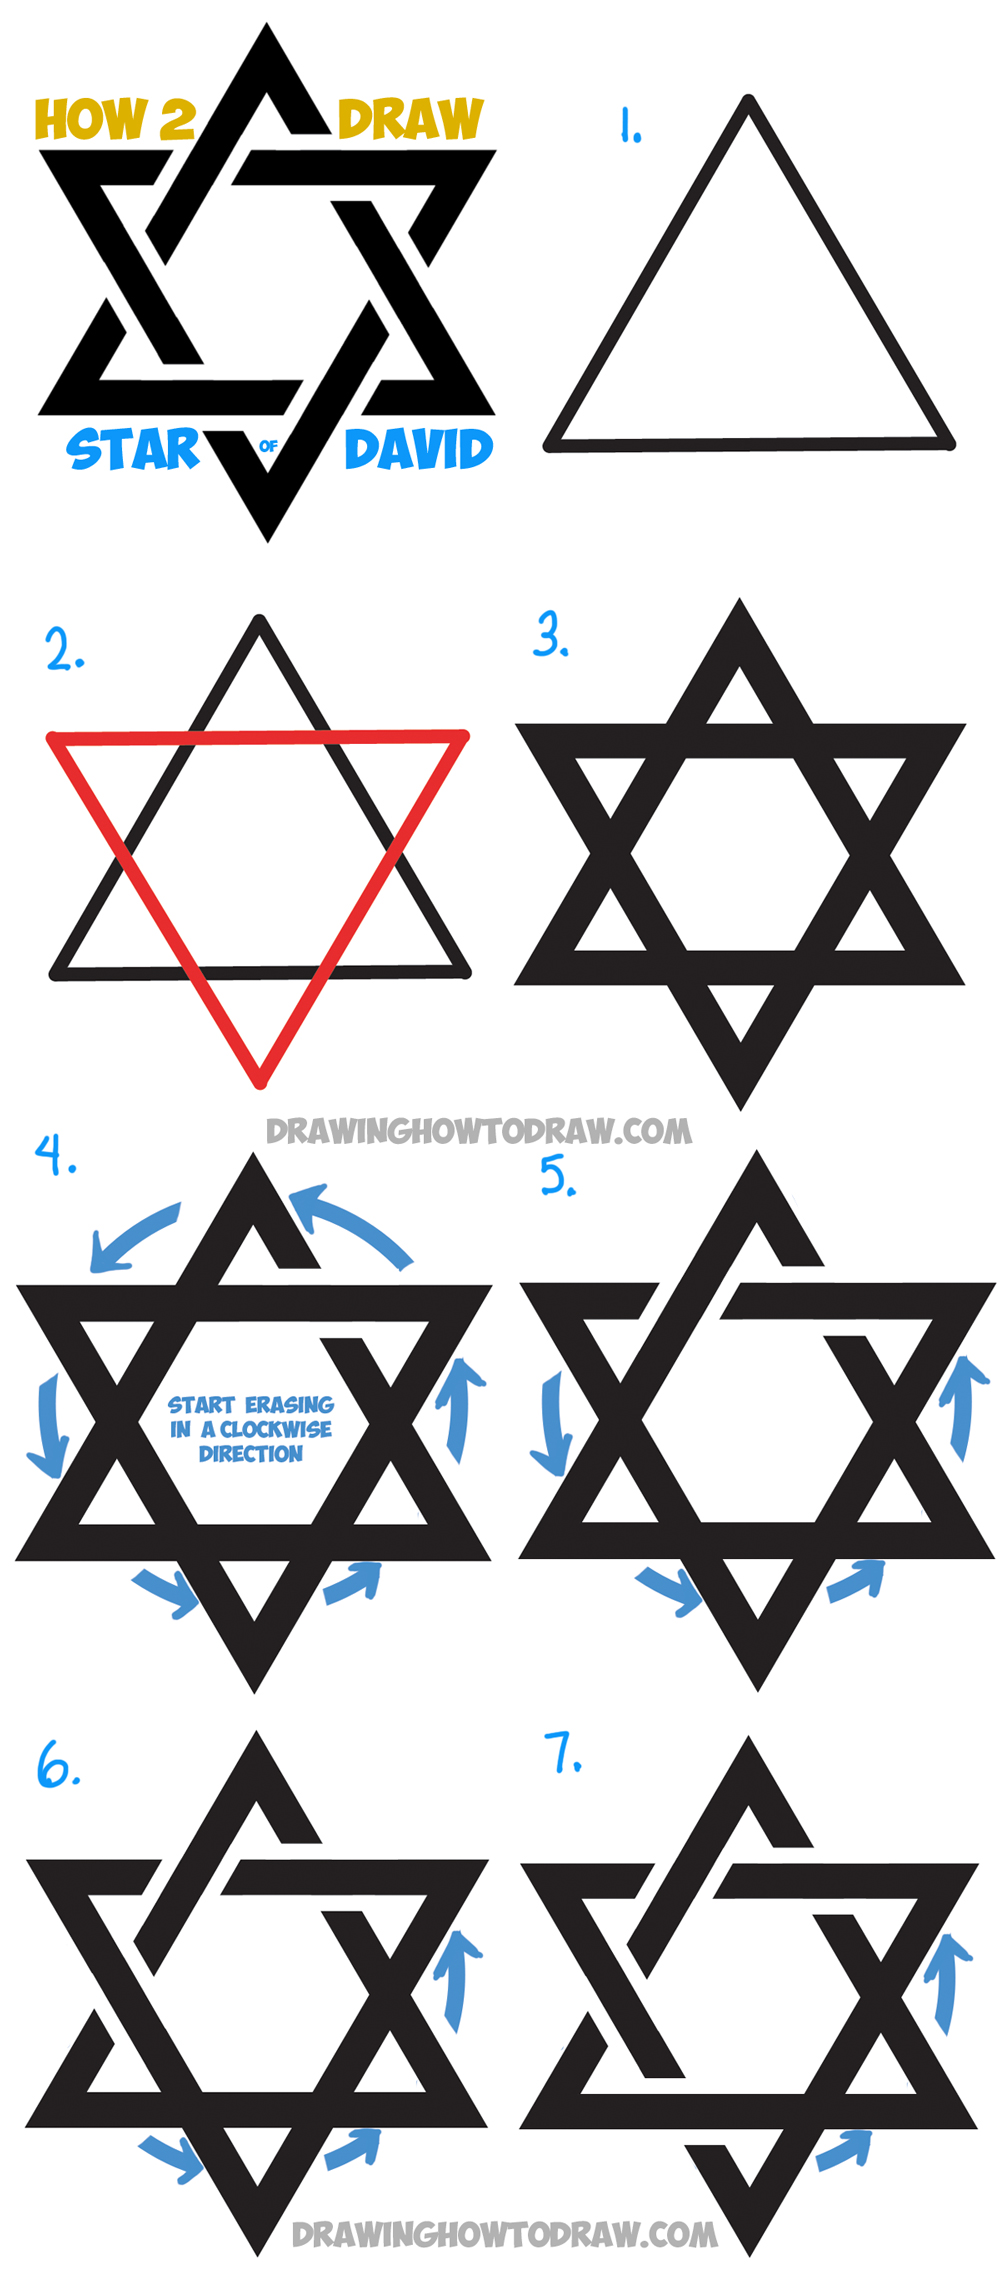 How to Draw the Star of David (The Jewish Star) with Fancy Interlocking Triangles